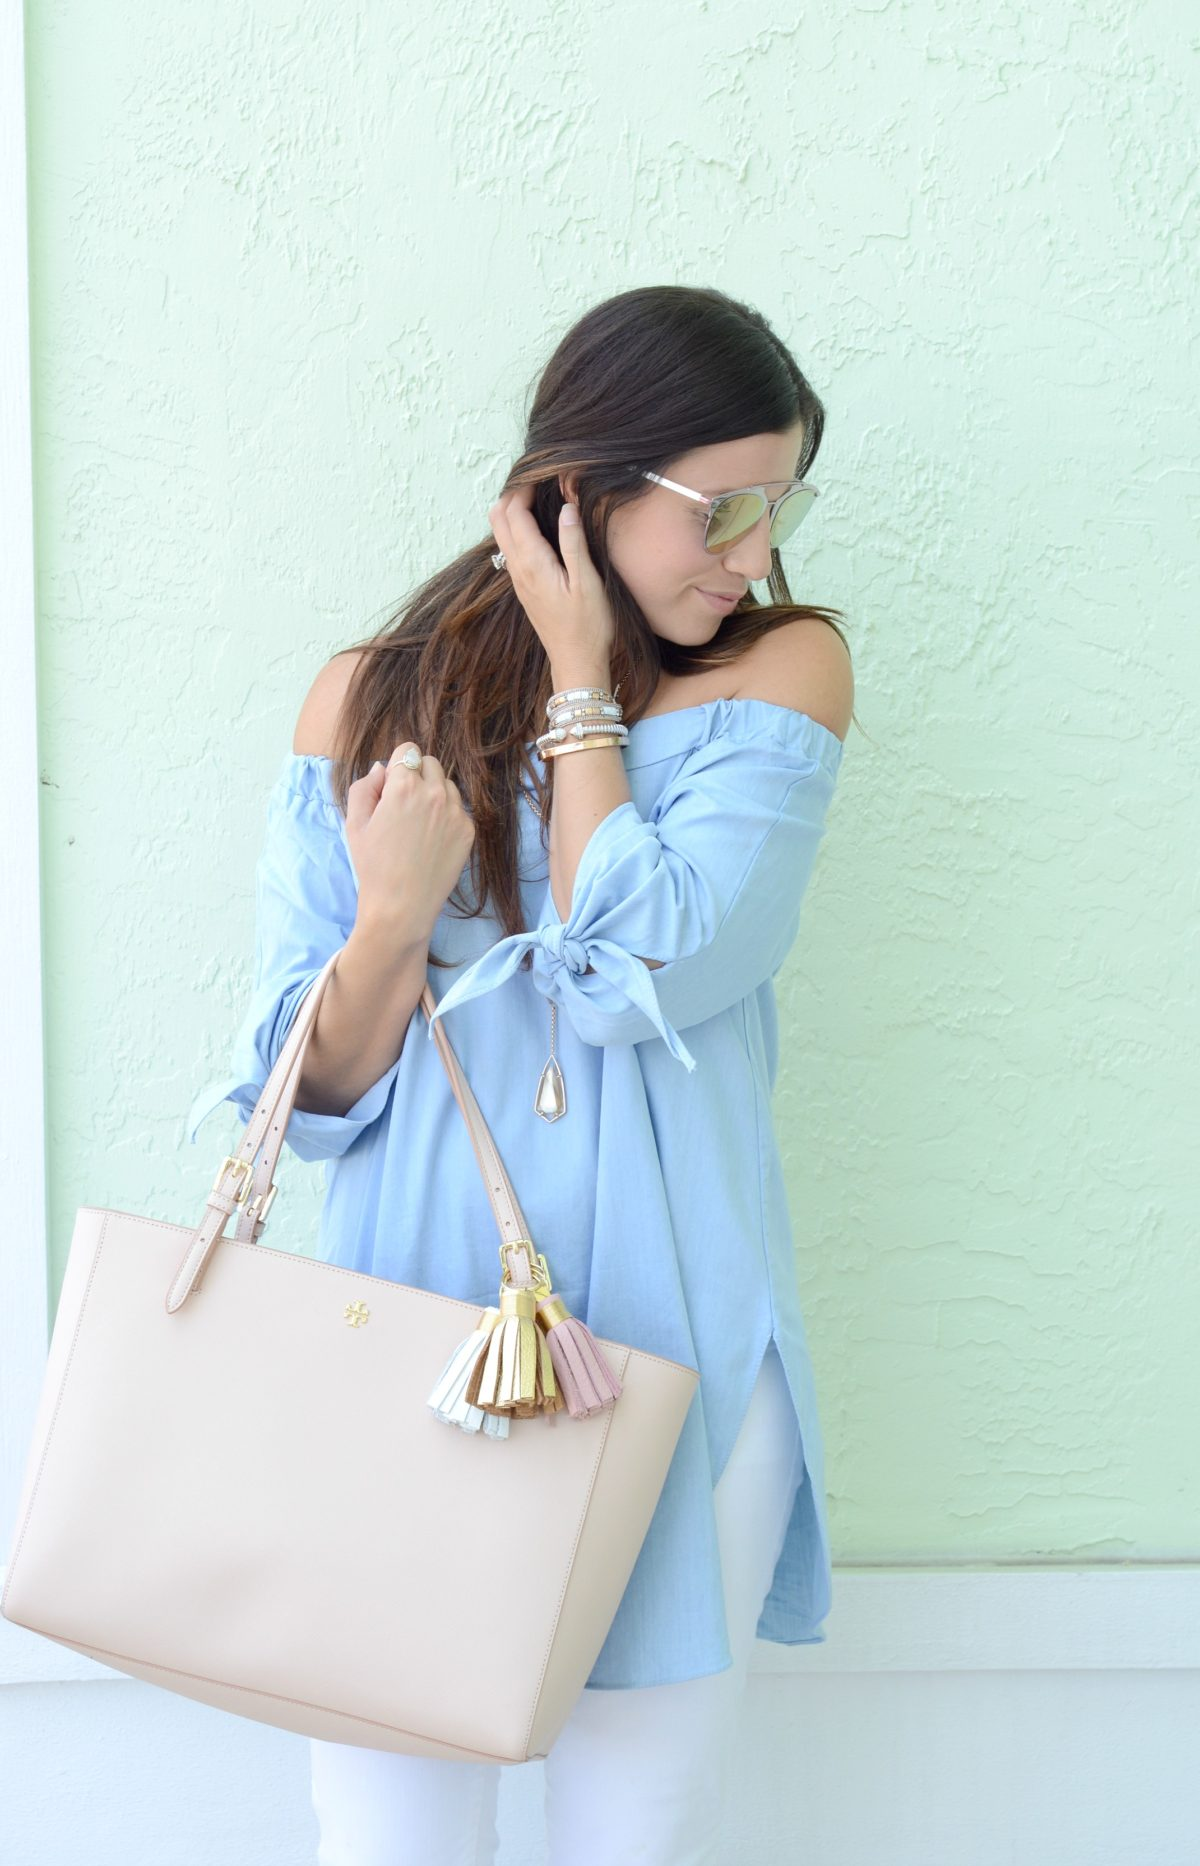 South Florida Fashion Blogger, Tory Burch York Tote